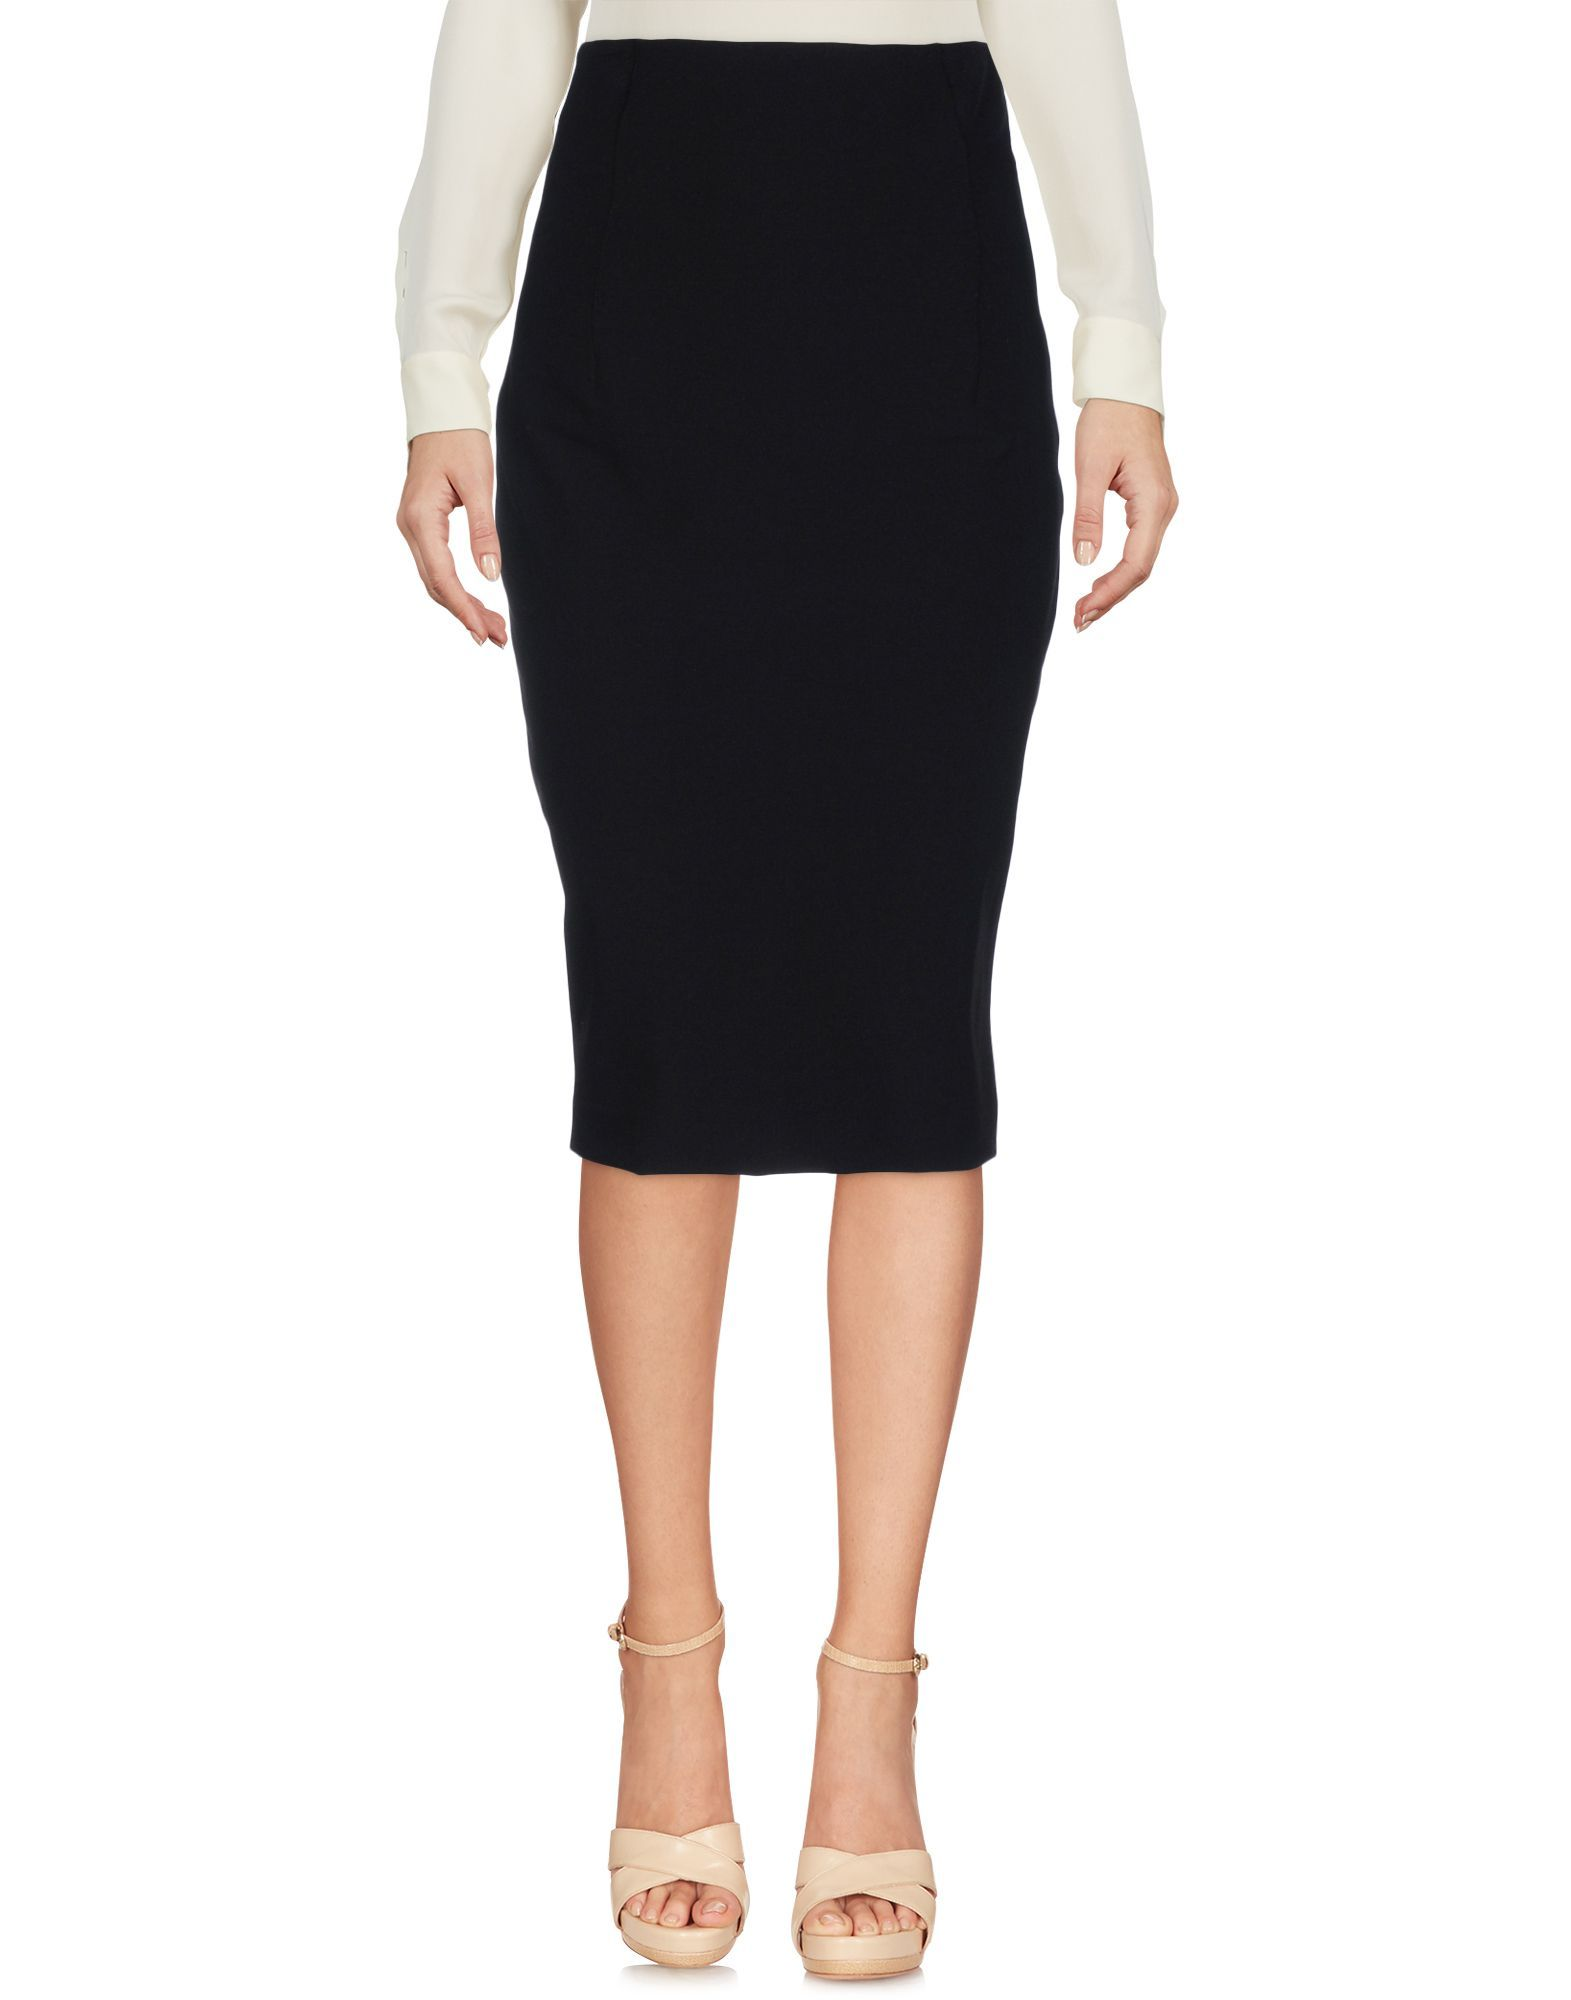 Twinset Black Pencil Skirt